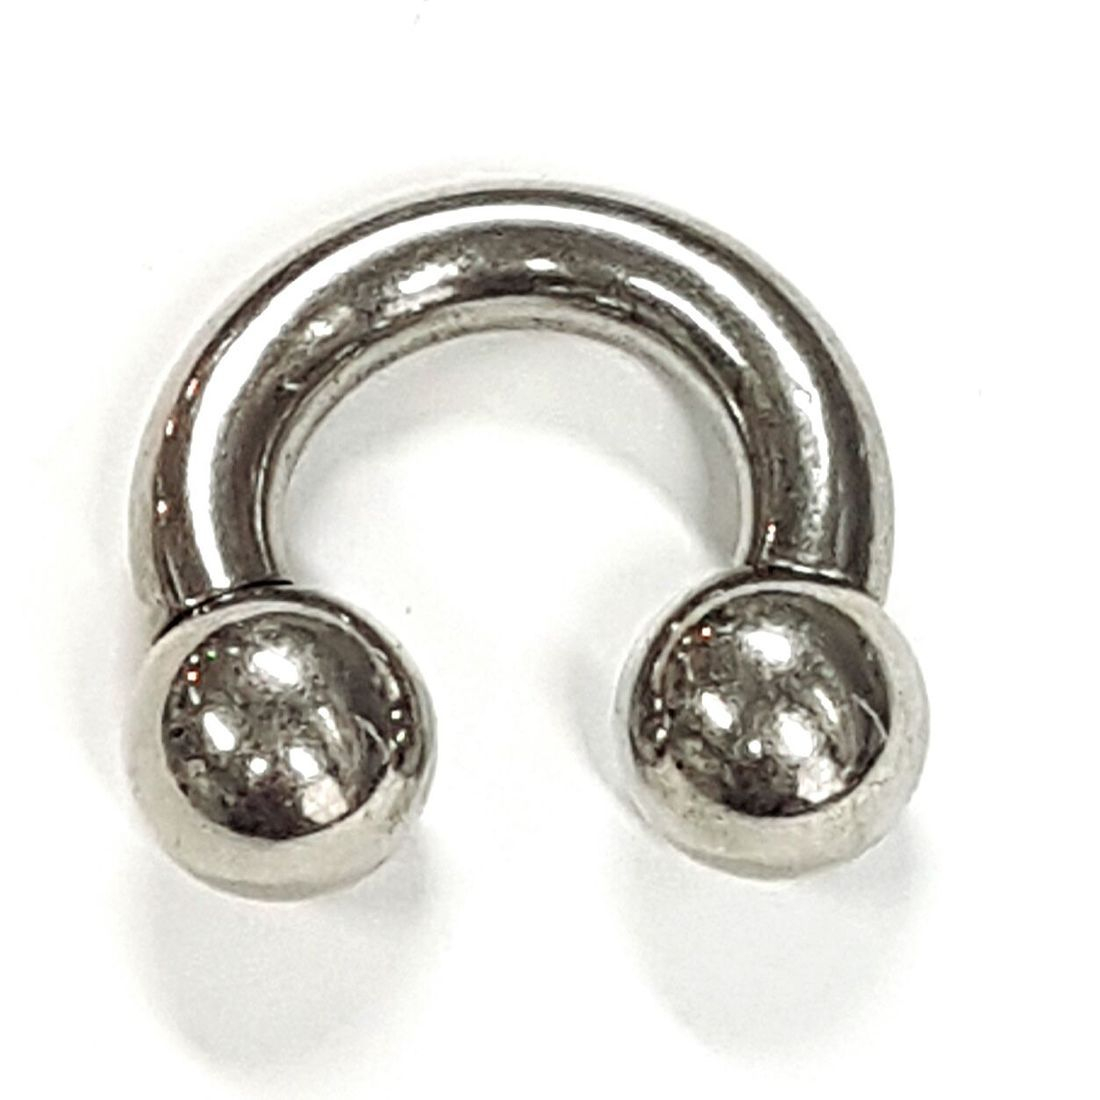 Titanium large gage body jewellery from Kazbah Leicester and Kazbah Online